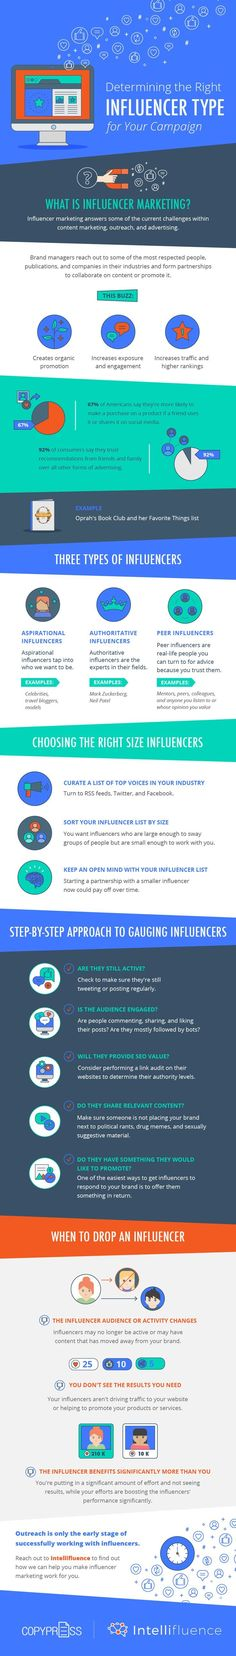 Considering influencer marketing? Click to blog to learn how to make it work for your business! There are 3 types of influencers – choose the right one for your small biz or startup. #marketingtips #smallbusinesstips #startuptips #socialmediamarketing #infographic #influence